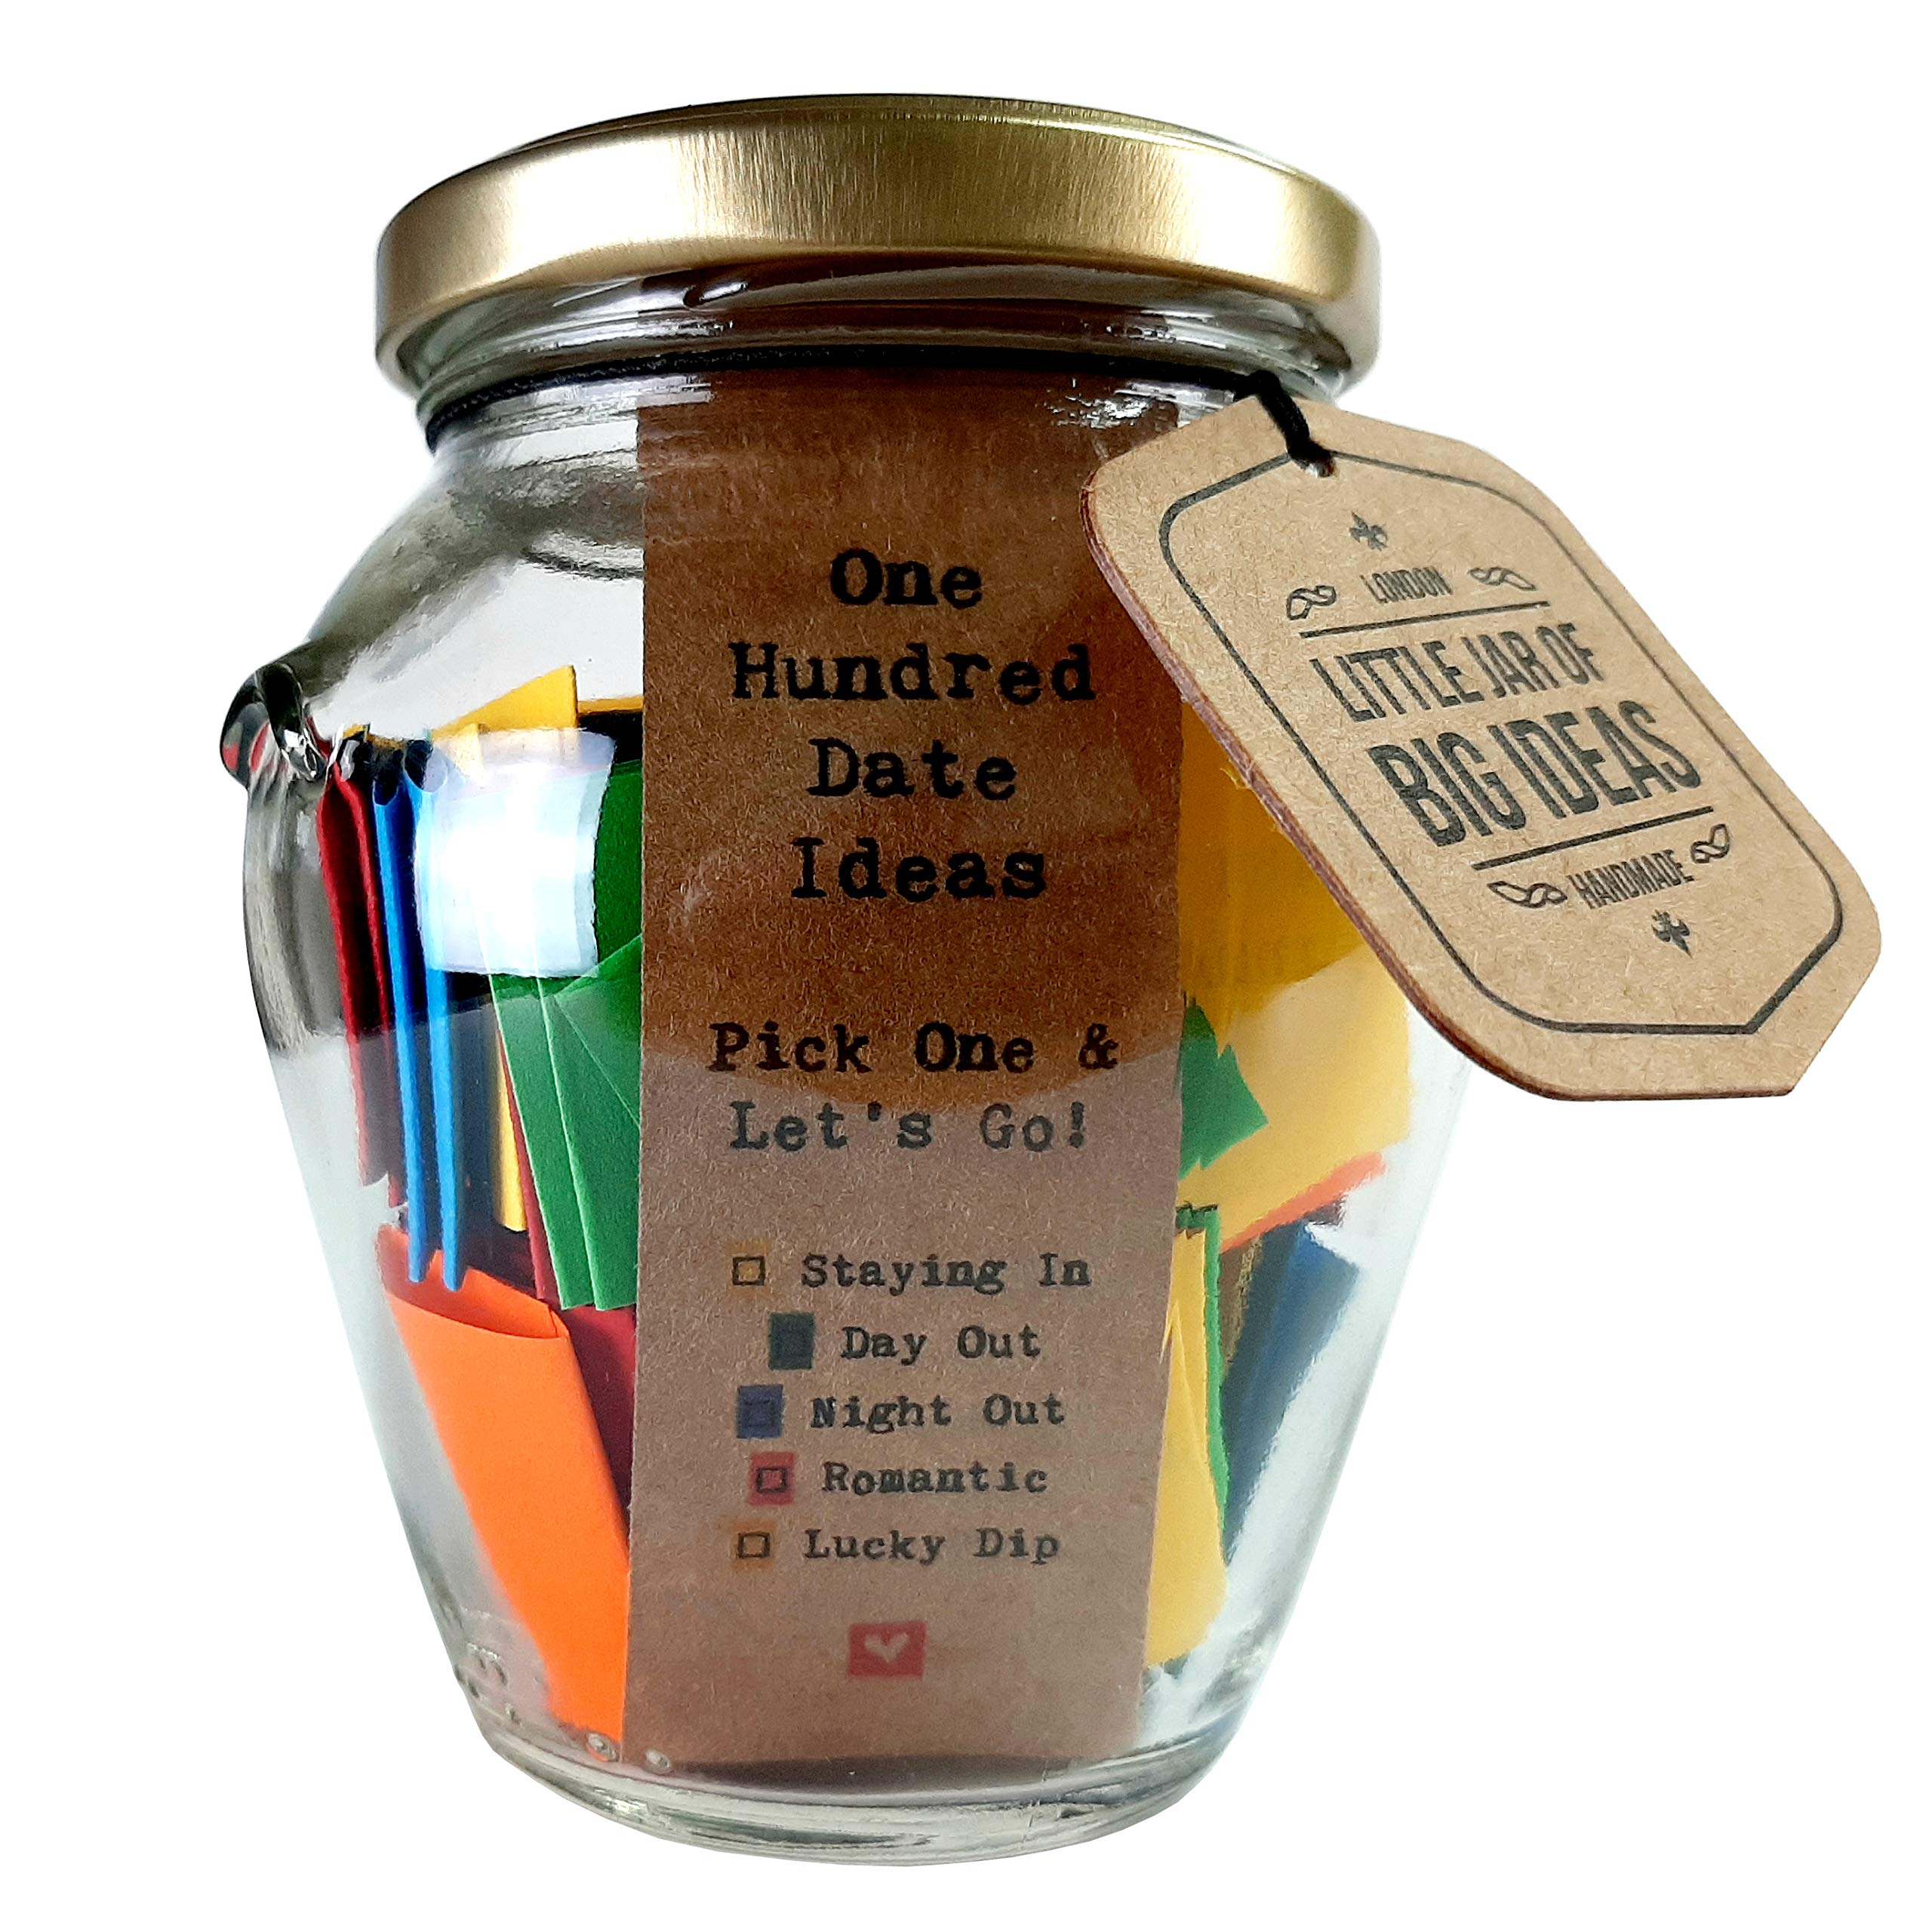 Little Jar Of Big Ideas 100 Date Ideas Pick One Let S Go Unique Thoughtful Gift Memorable Gift Unique Present Artisan Handcrafted Gift Standard Buy Online